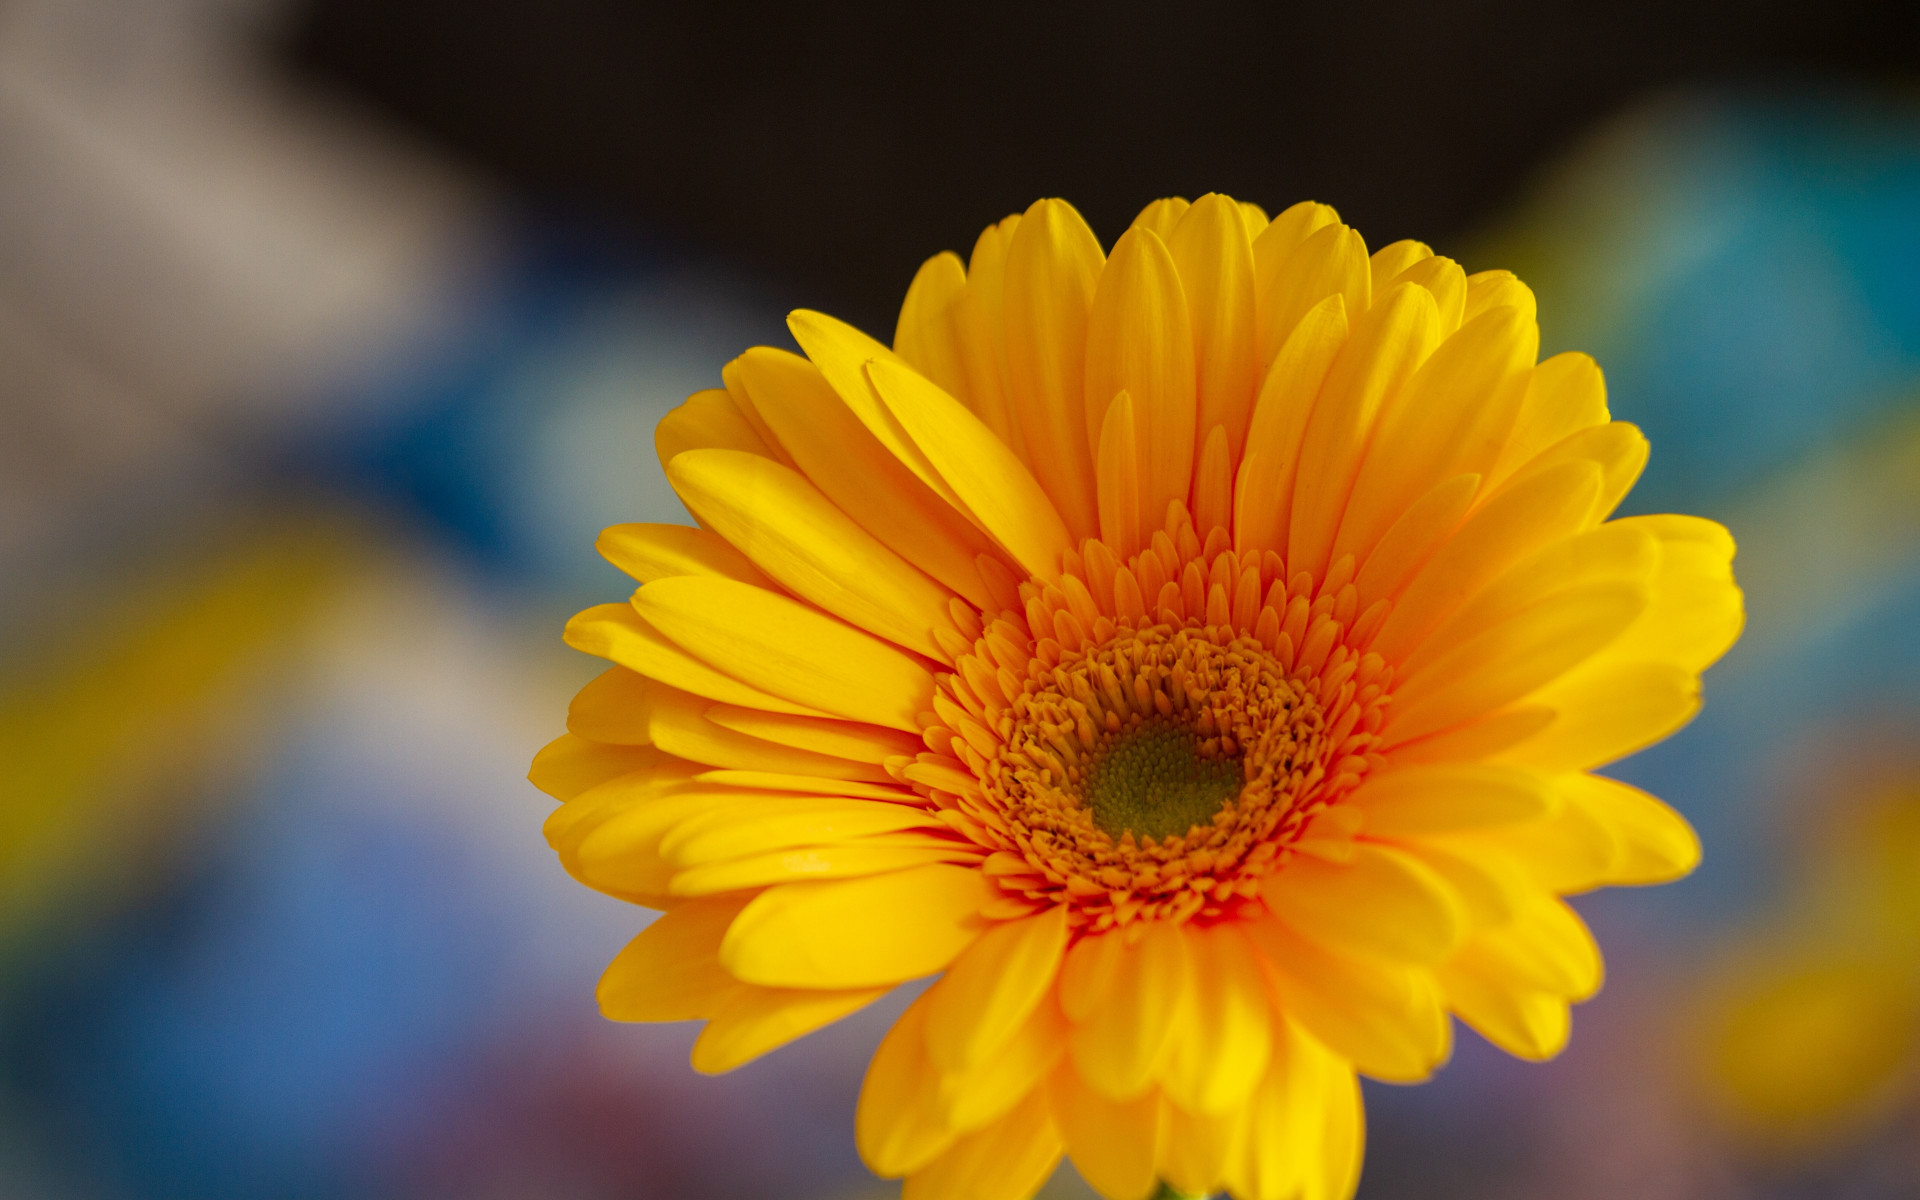 Gerbera flower | 1920x1200 wallpaper